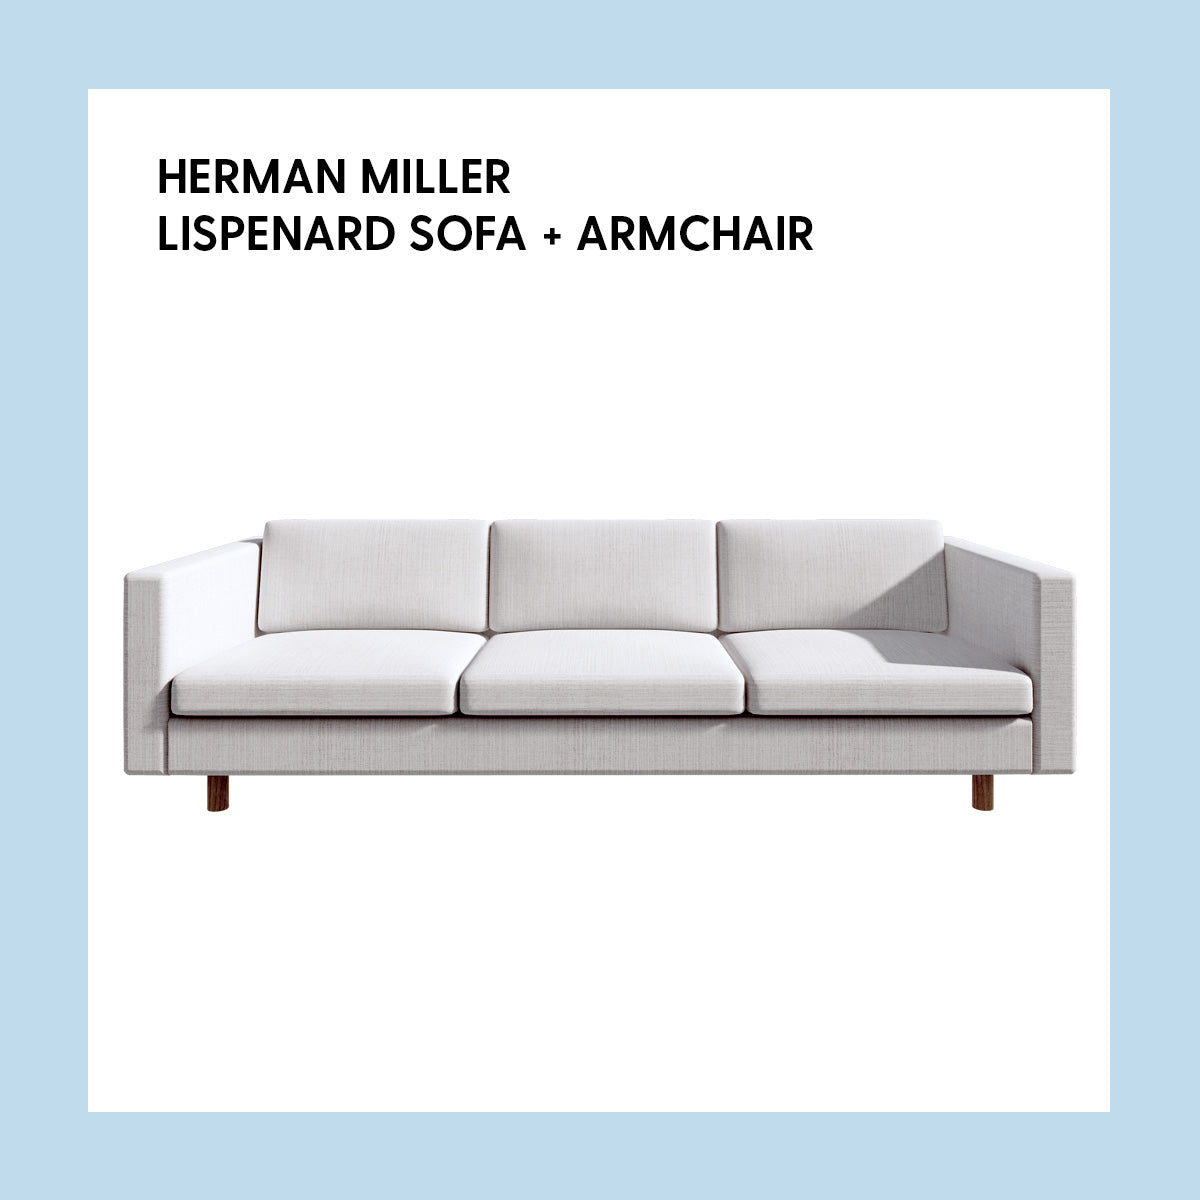 Herman Miller Lispenard Sofa + Armchair